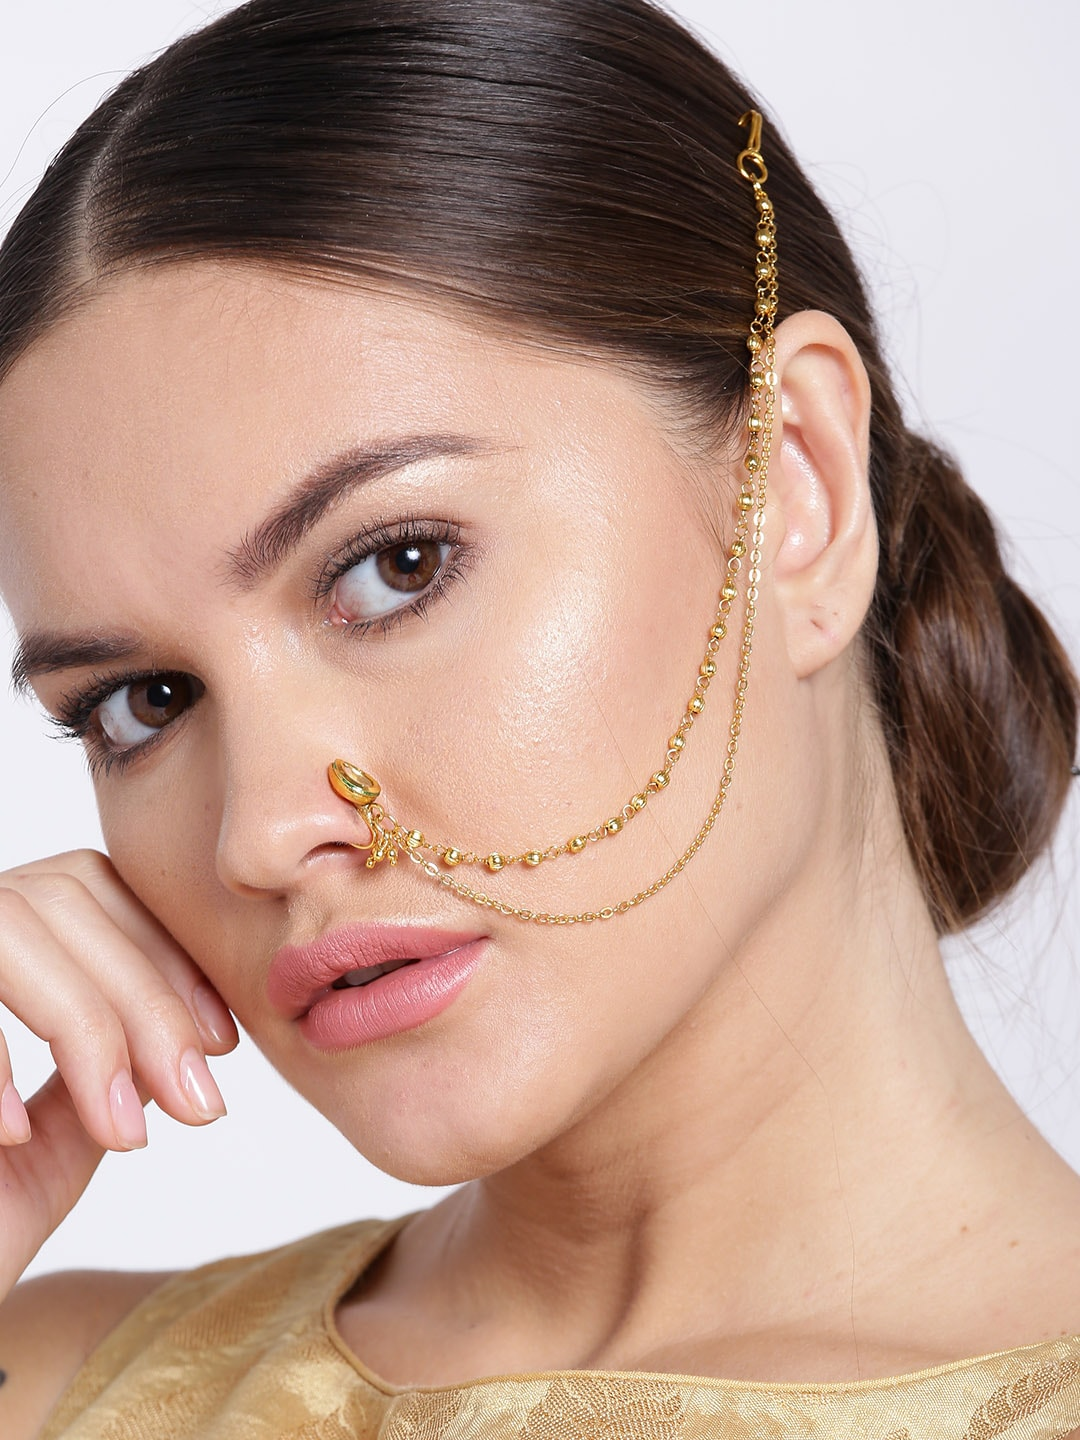 Priyaasi Gold Plated Cz Stone Studded Handcrafted Nose Ring With Chain